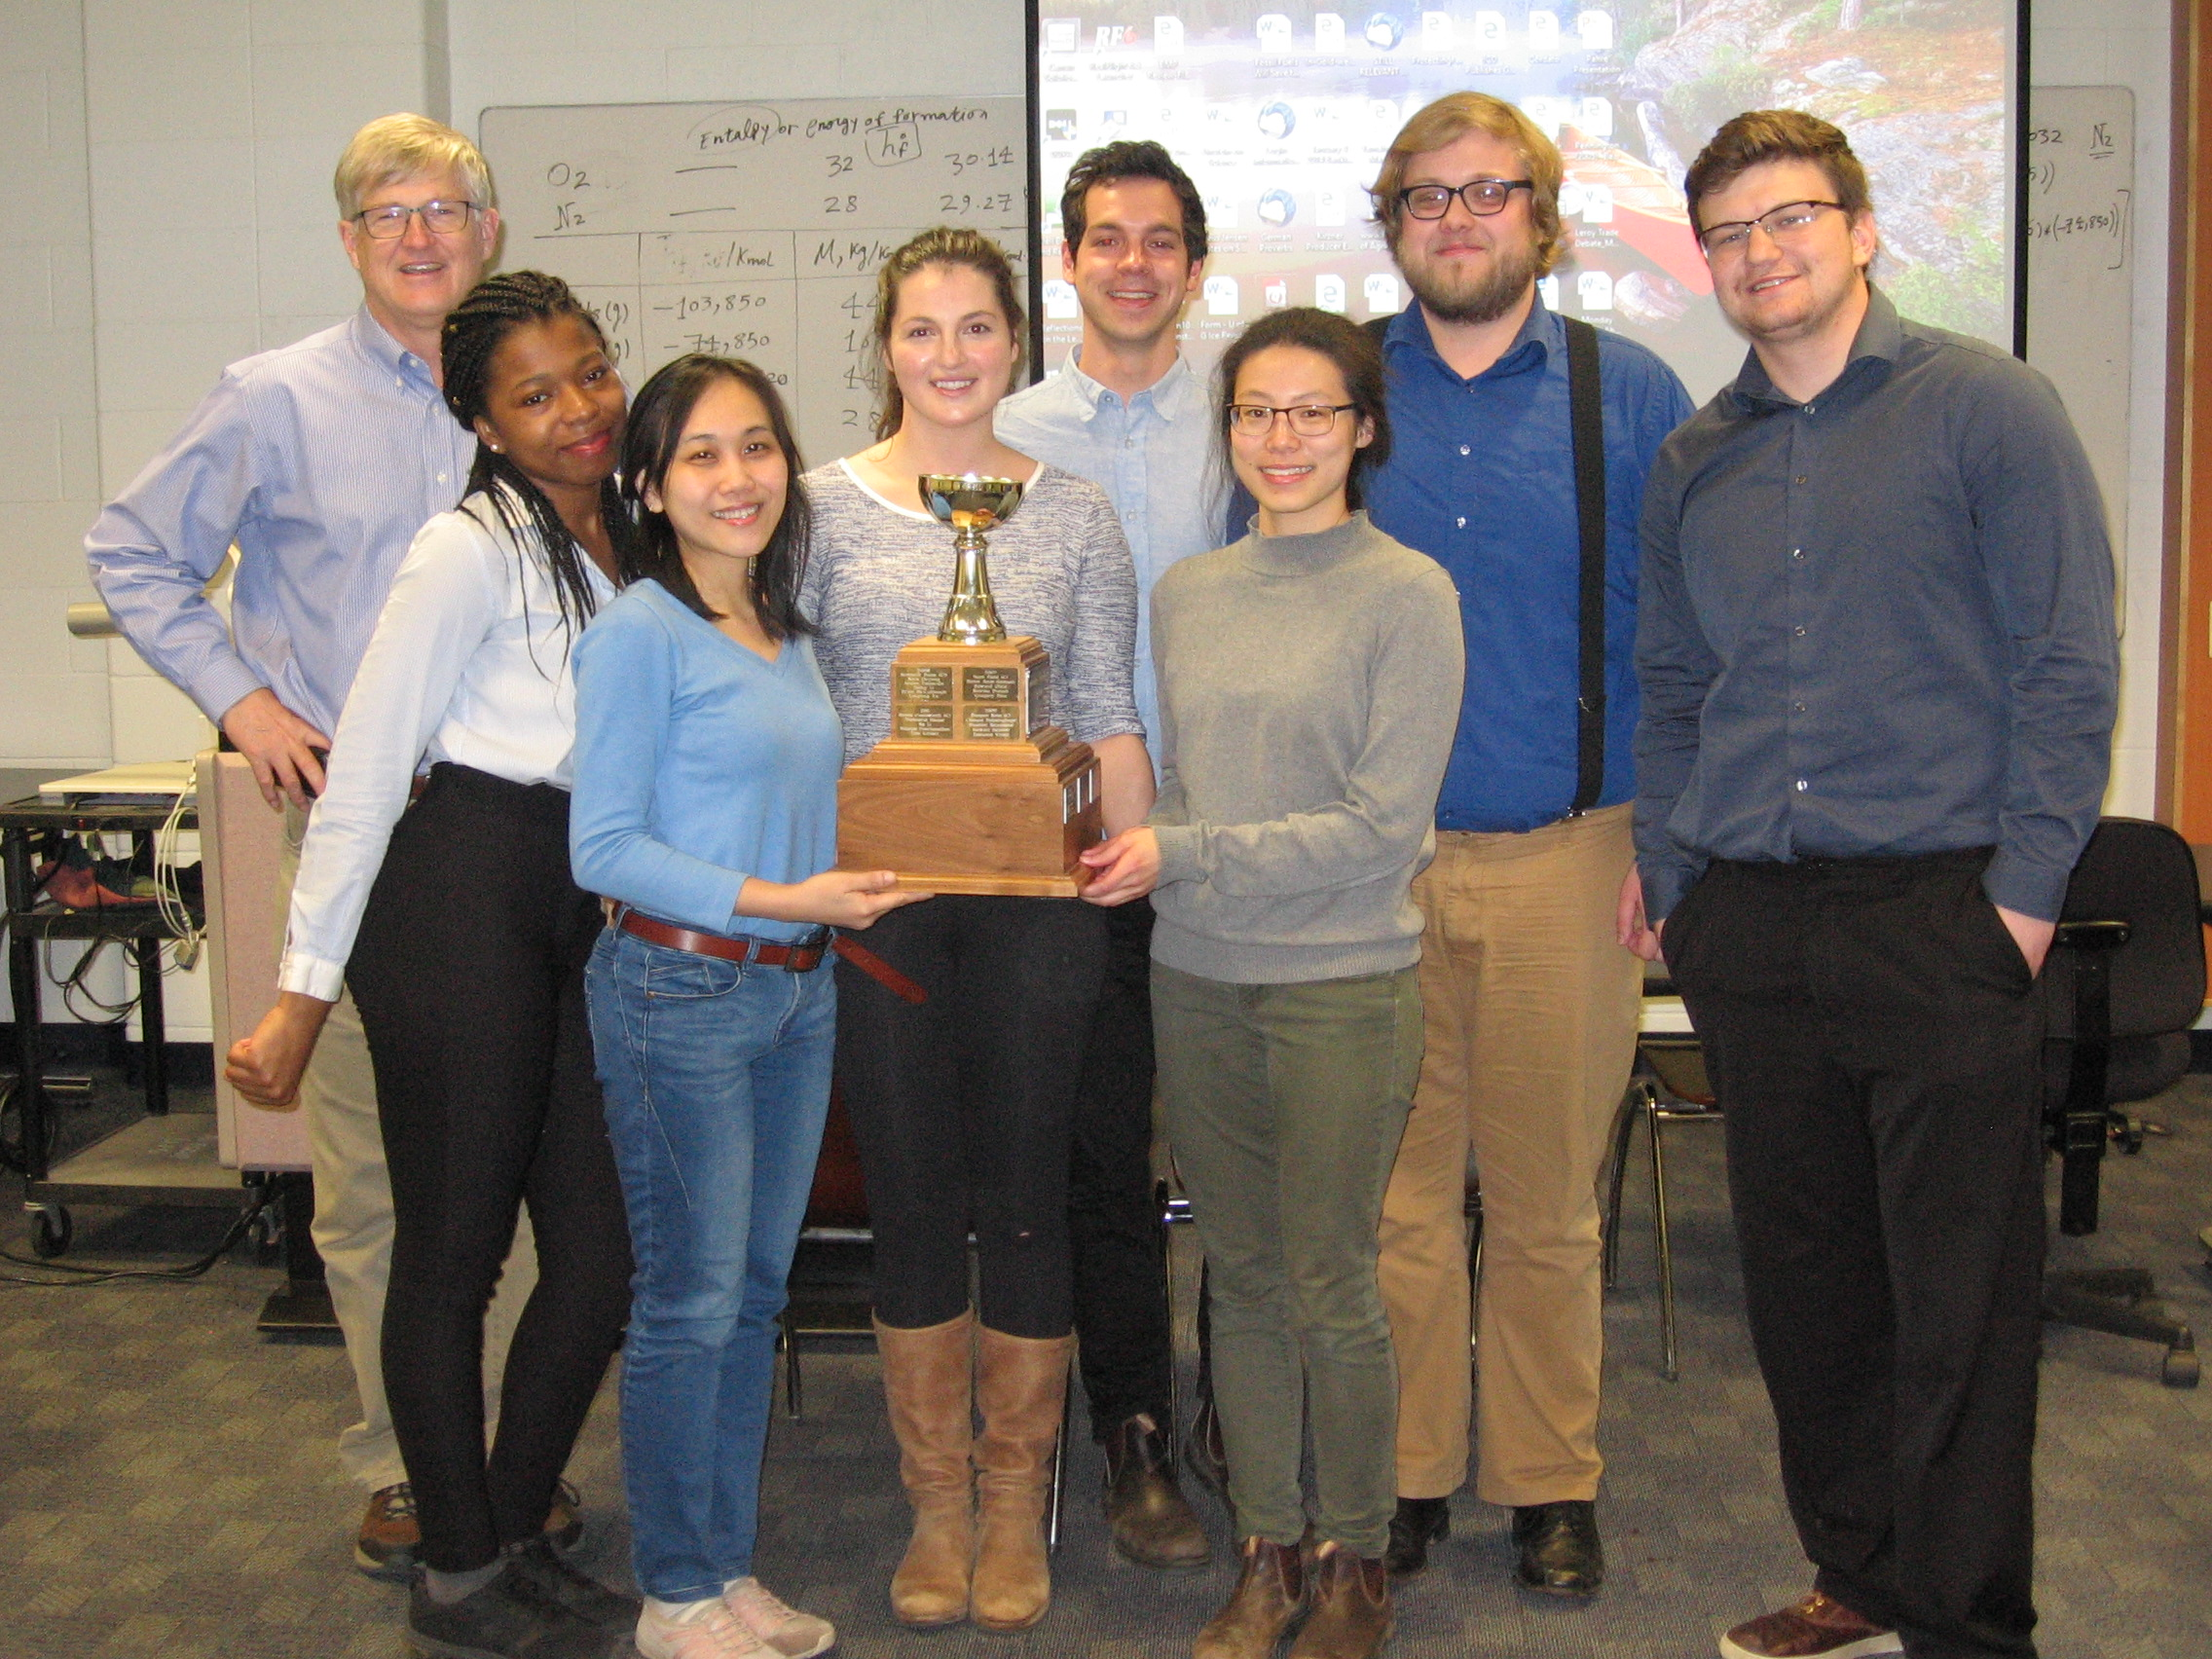 Group photo of Dr. G. Fox and the 7 students on the Opposed team.